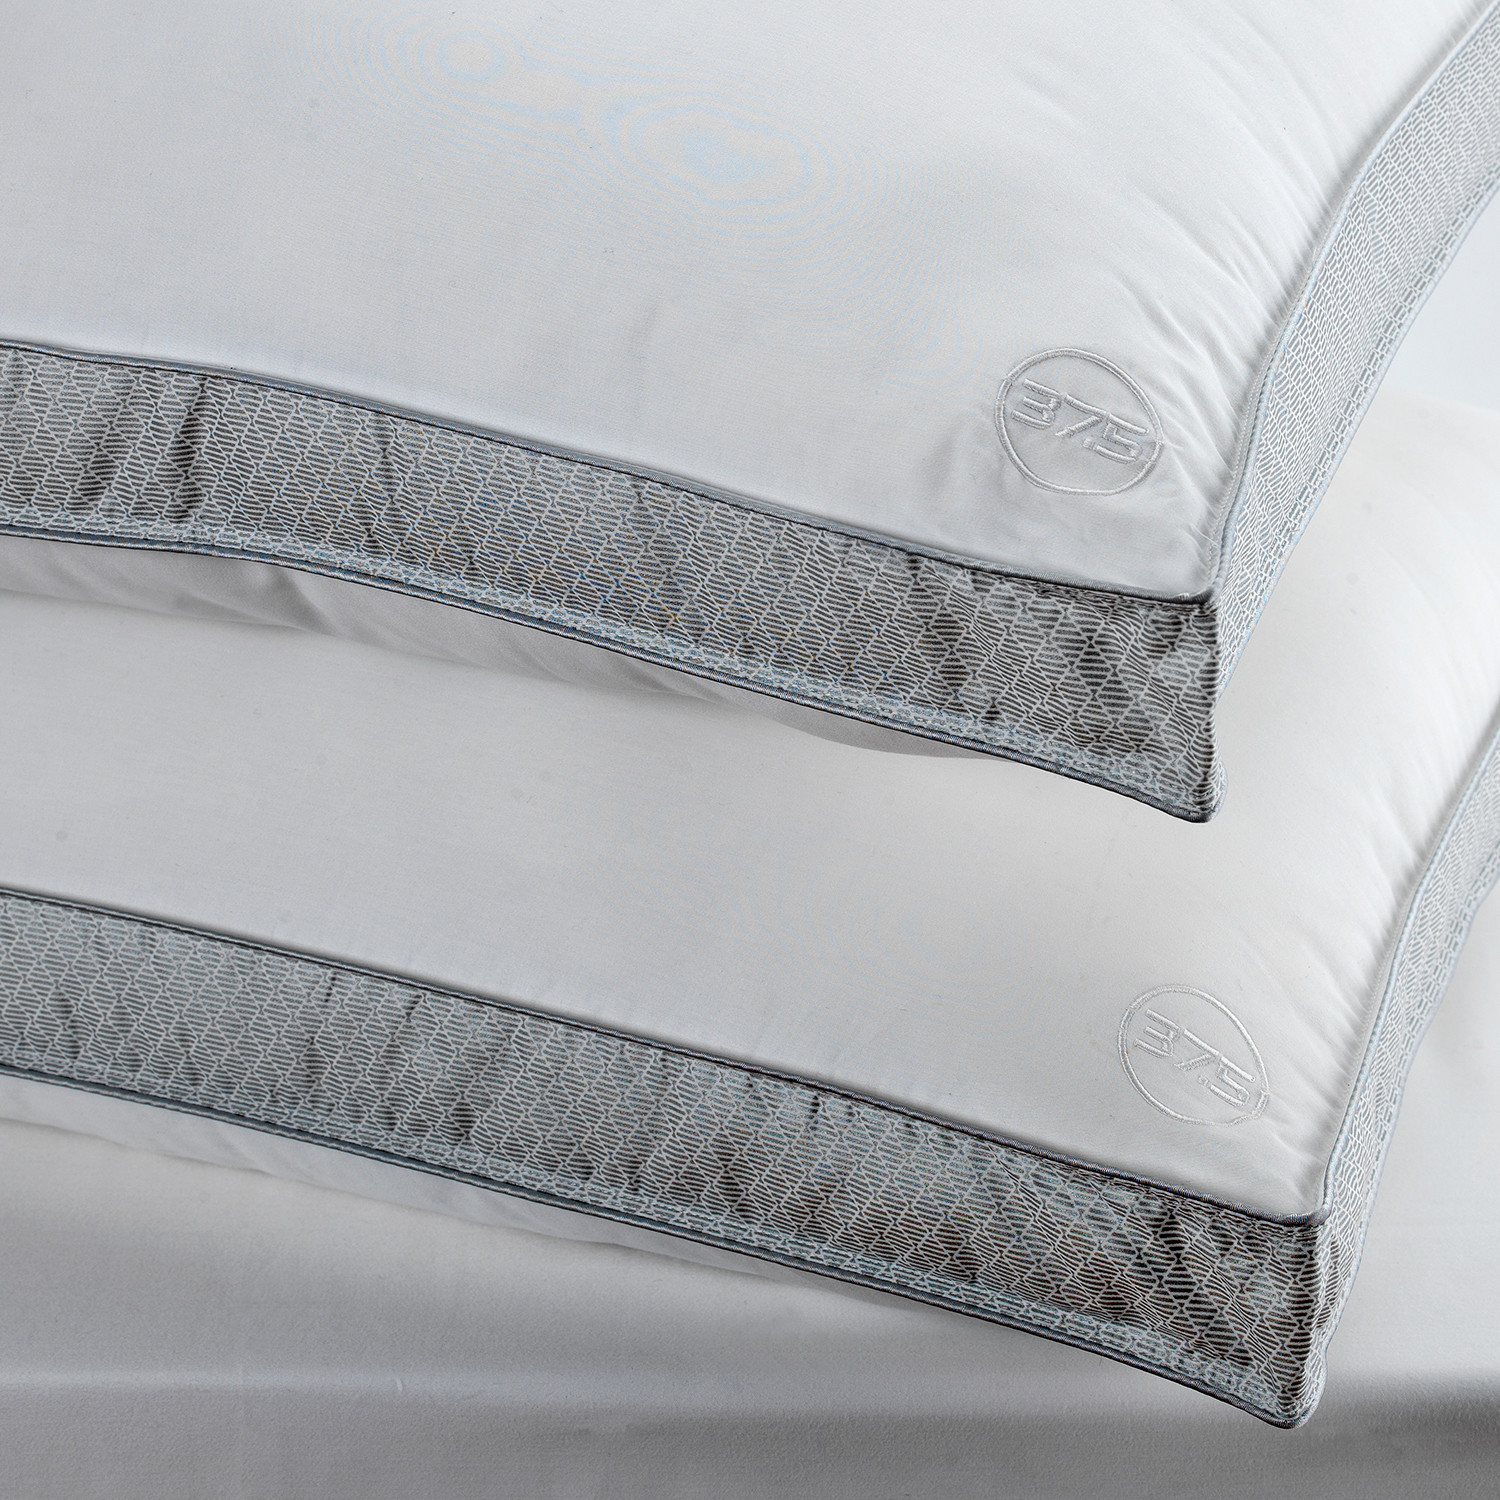 Performance Pillow Removable Cover With 375 Technology